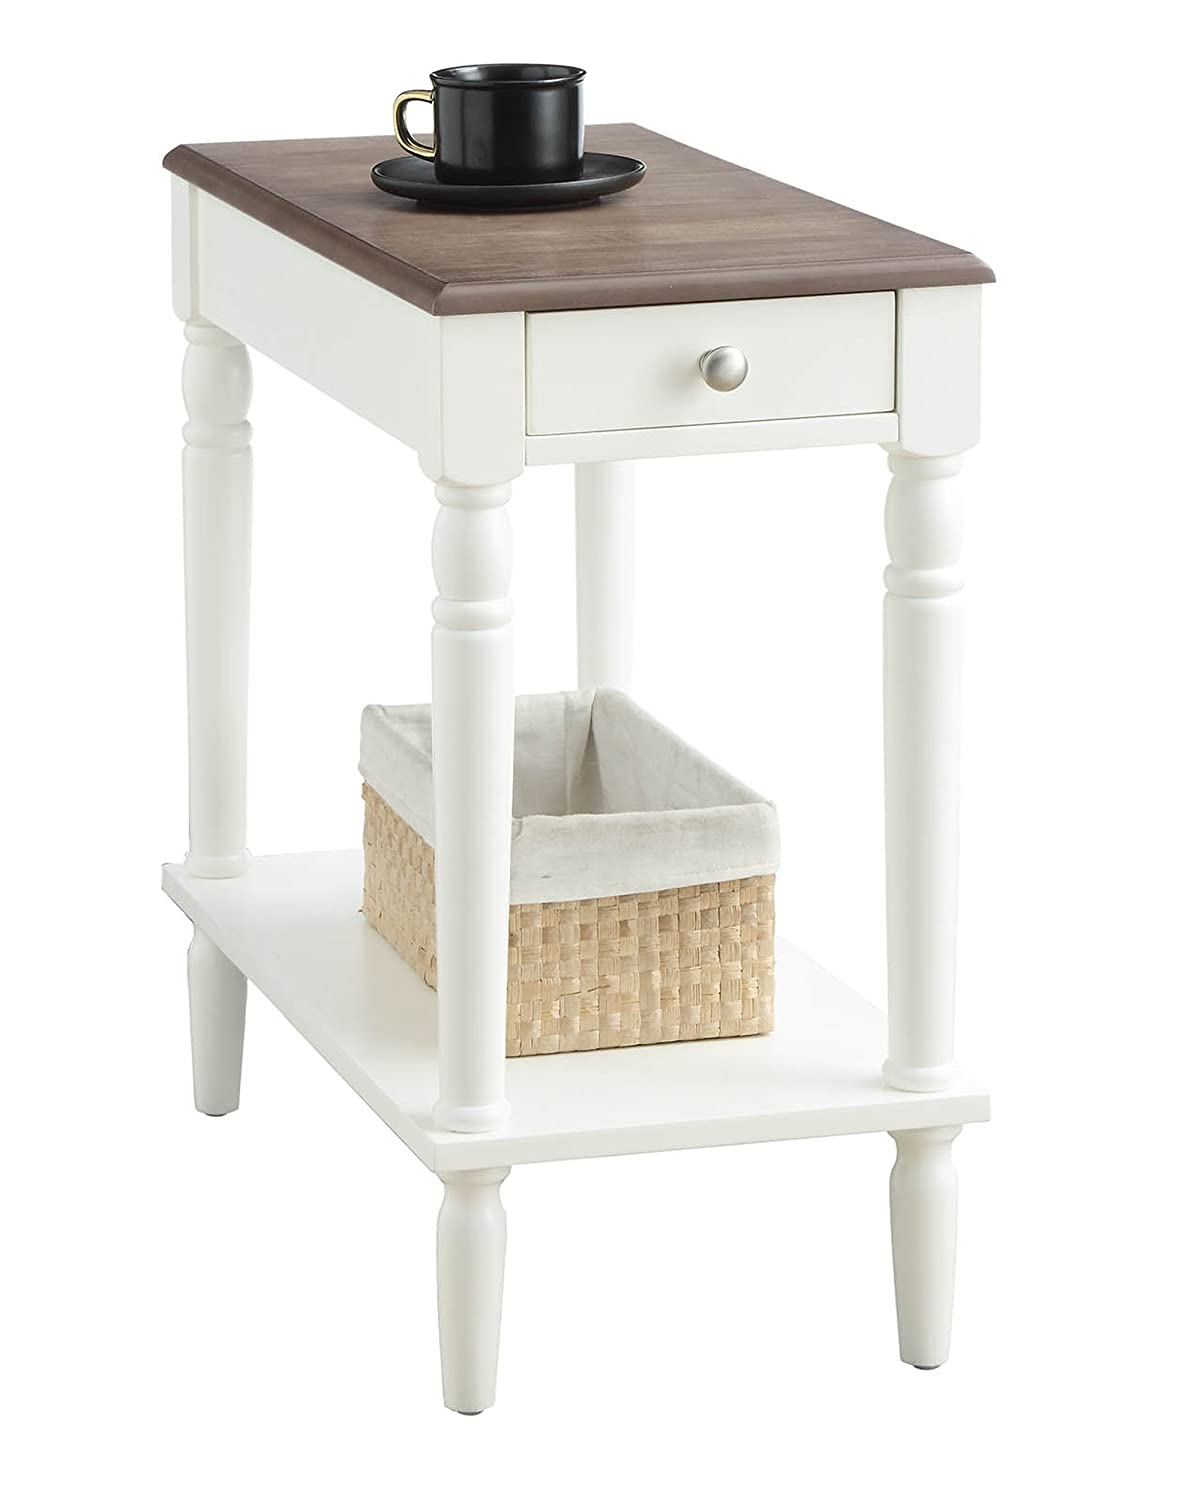 Convenience Concepts 6053210DFTW Chairside Table, Driftwood White